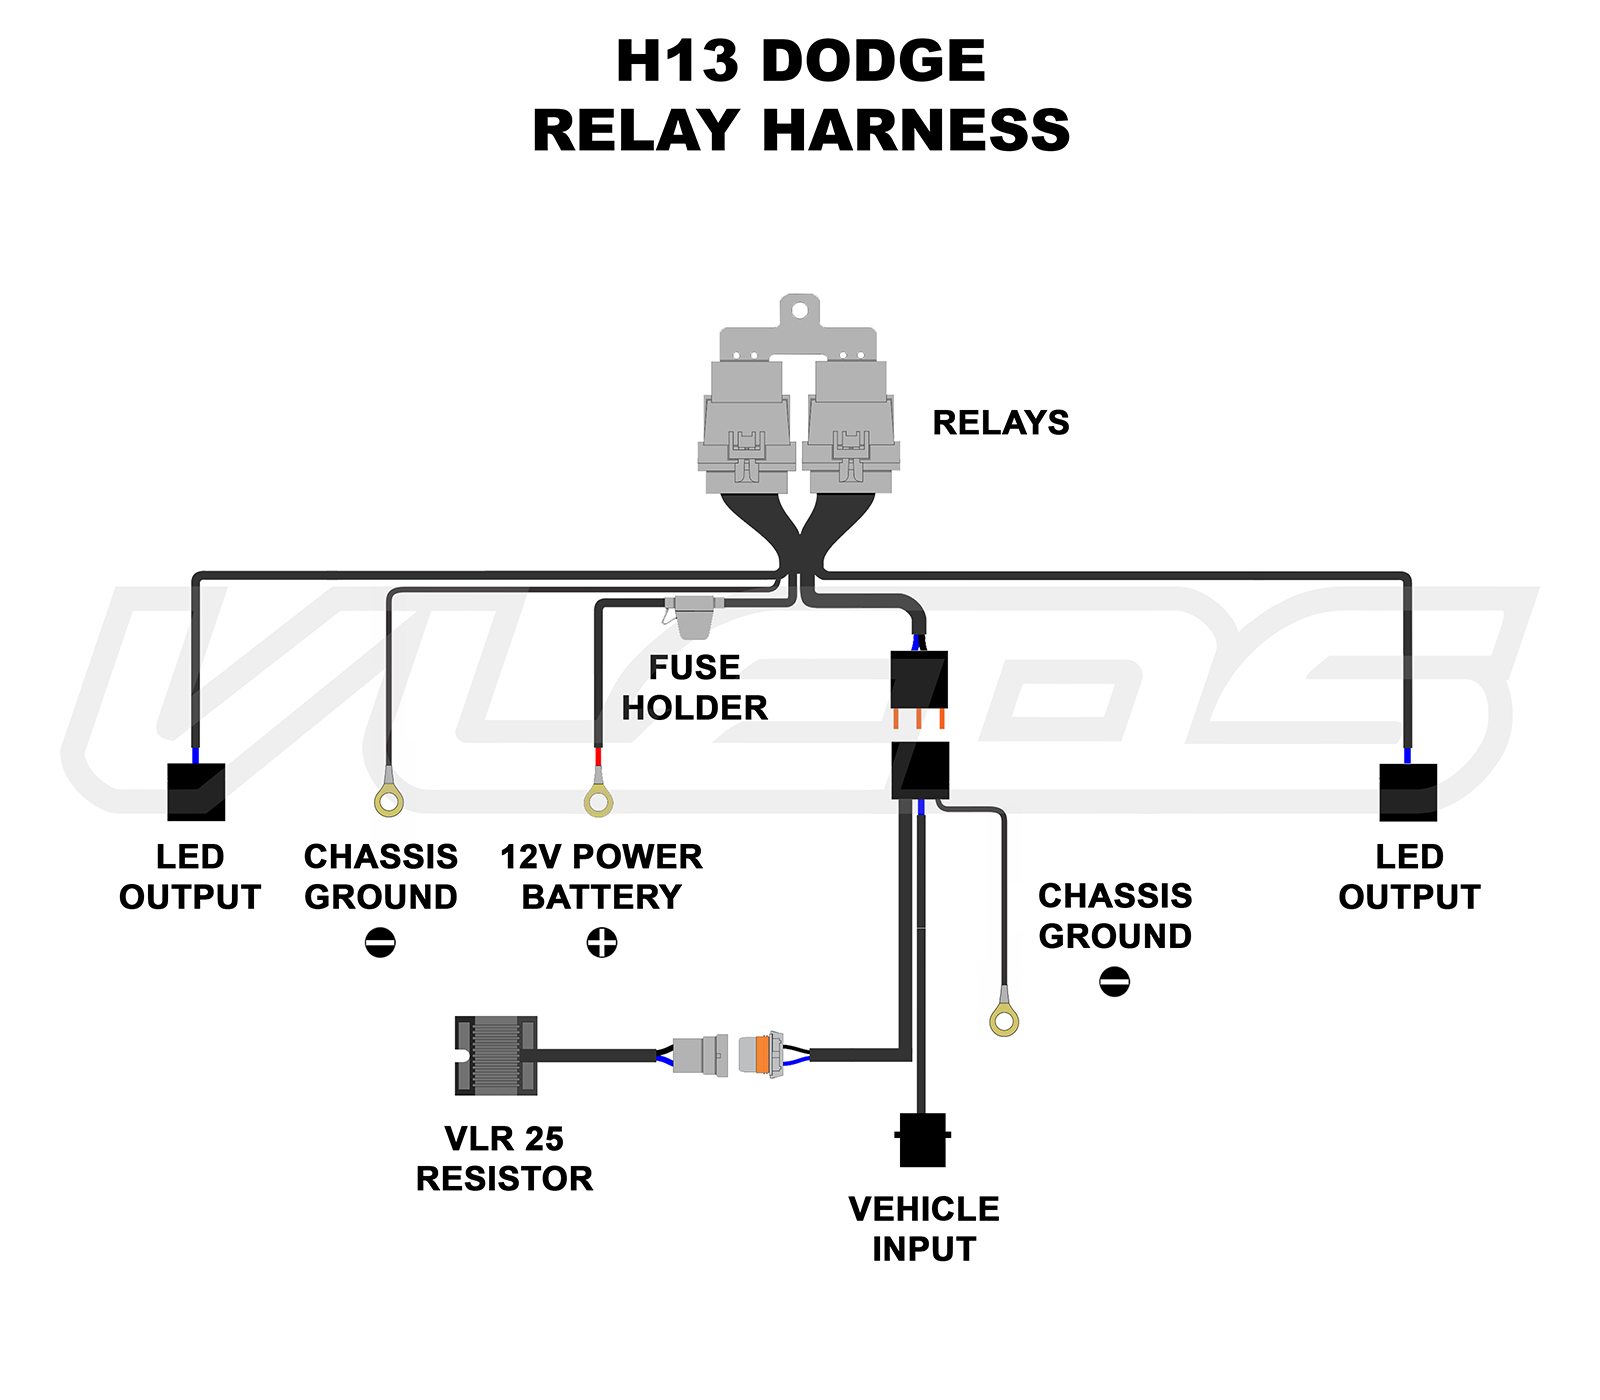 Wiring Diagrams Power Relay Harness H13 Dodge Jeep Chrysler